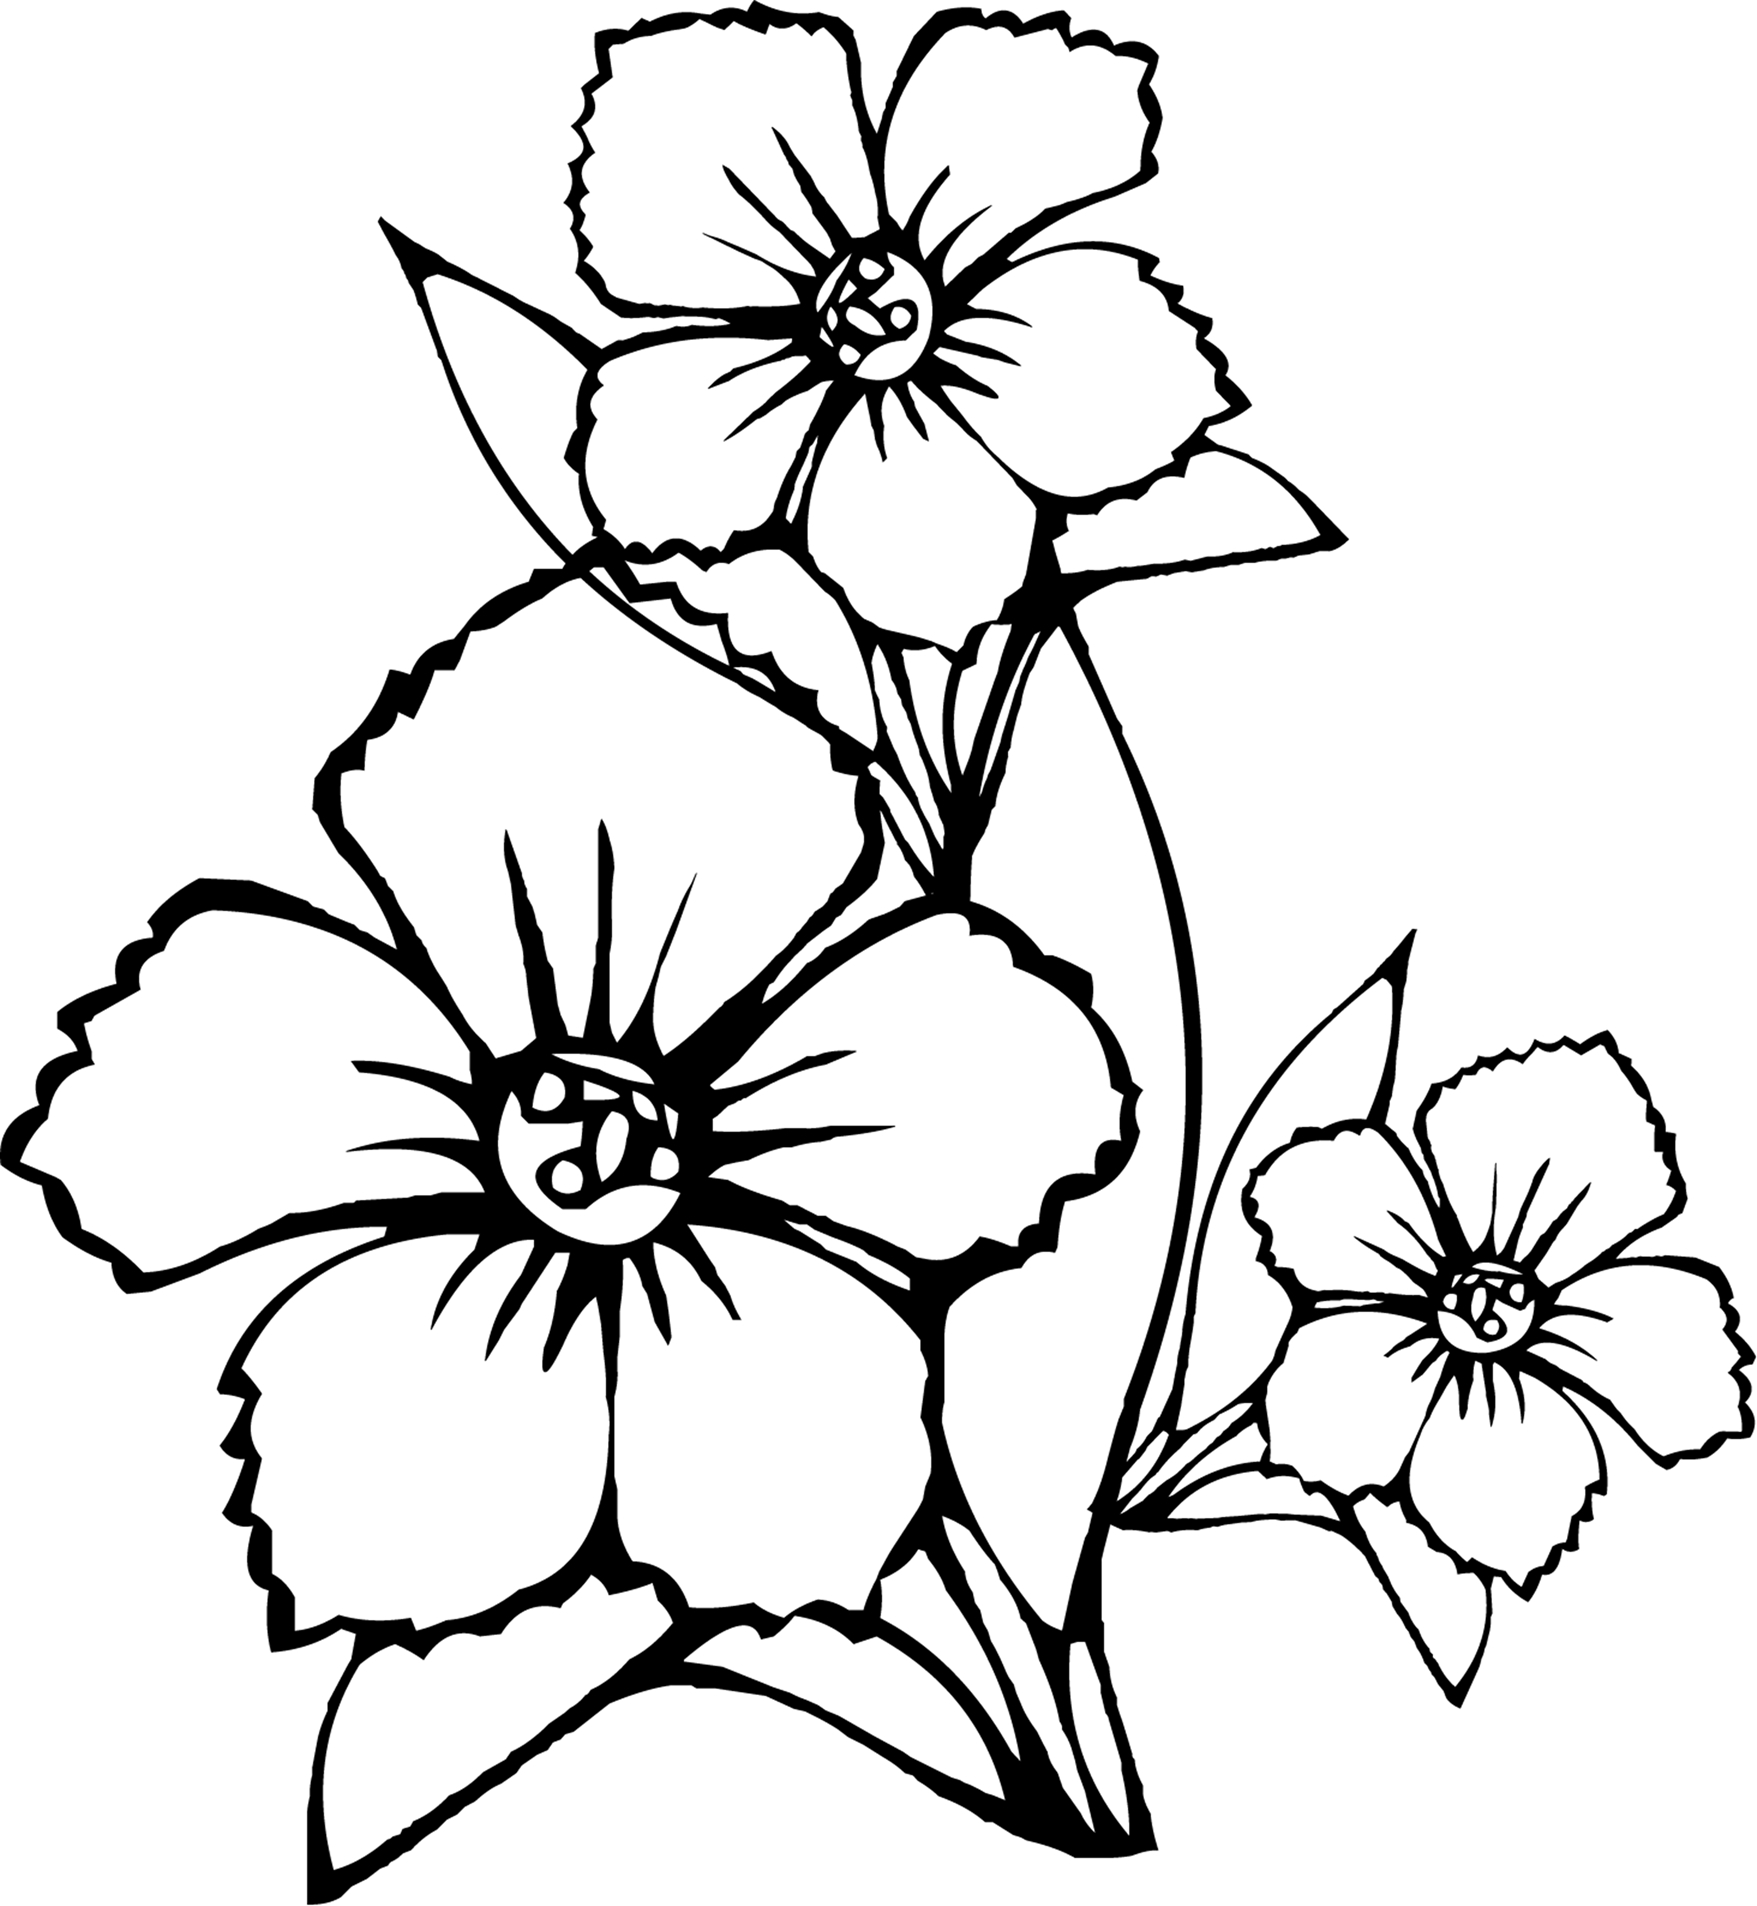 flower coloring pages printables free easy to print flower coloring pages tulamama pages coloring printables flower